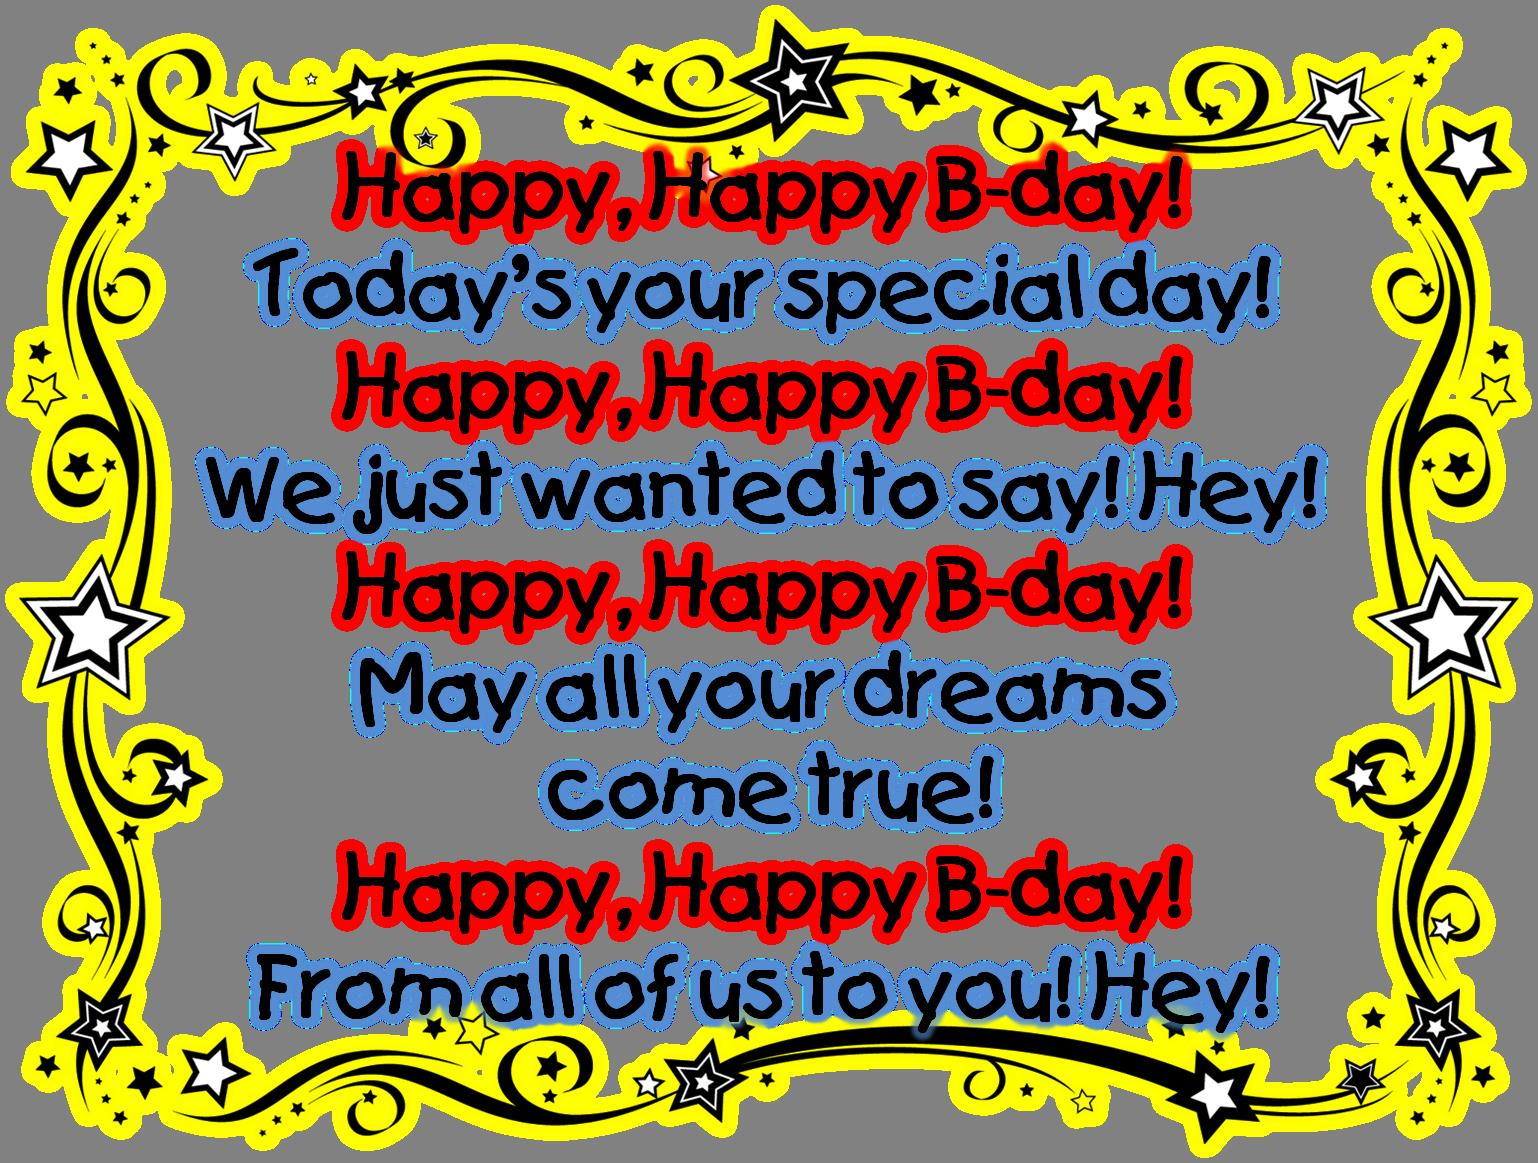 sing happy birthday to you ; Happy-Birthday-to-you-Party-Songs-mp3-For-Kids-Adults-Free-Download-1